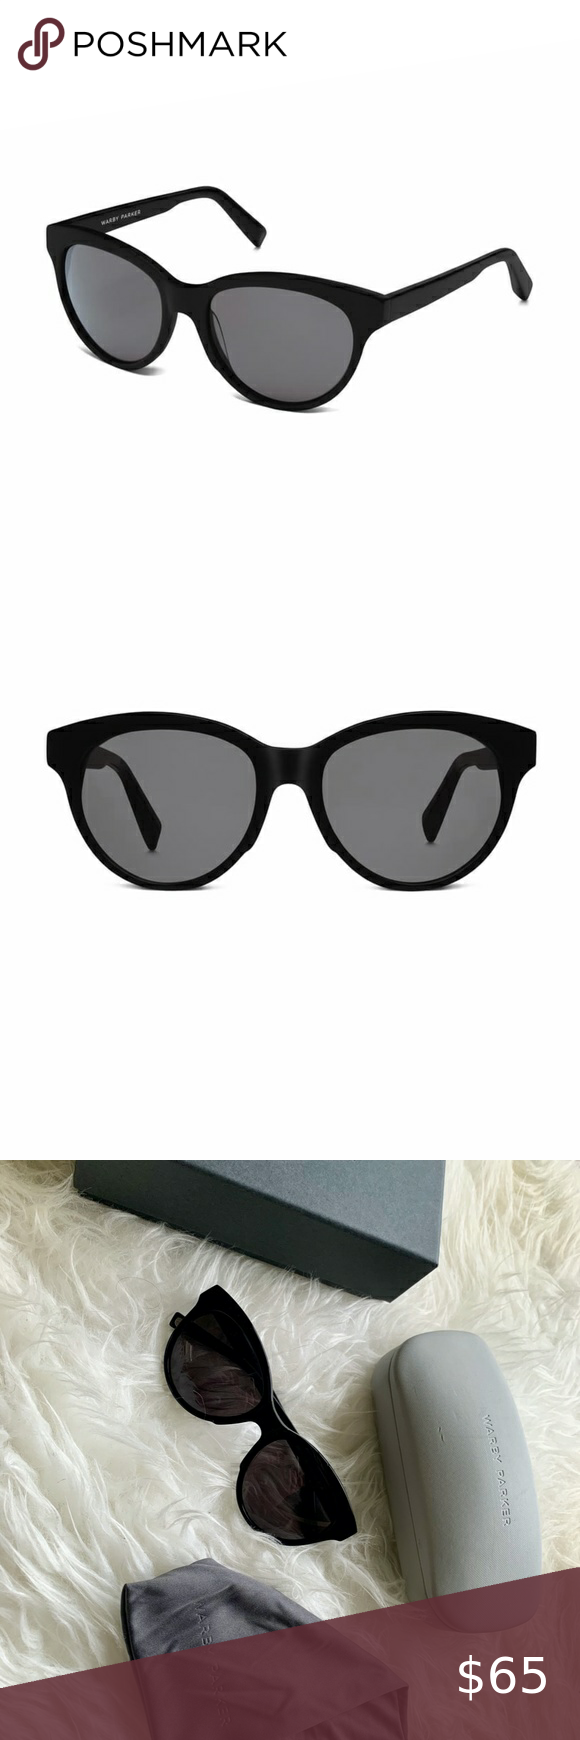 Warby Parker Piper Polarized Sunglasses Warby Parker Jet Black Color Warby